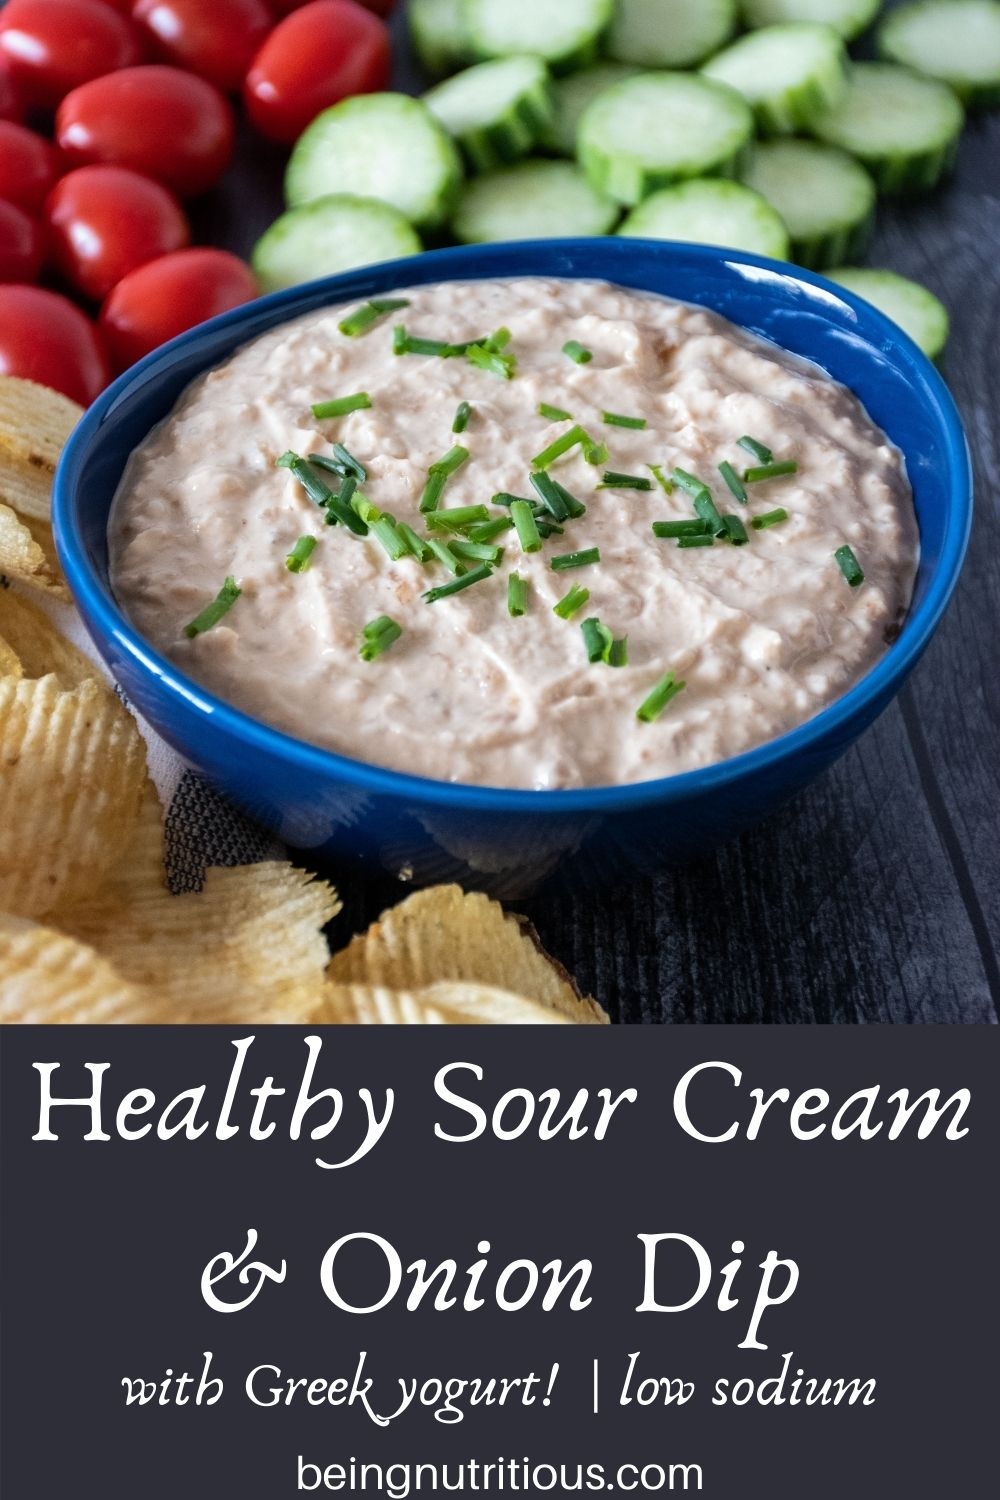 Bowl of dip, surrounded by chips, baby tomatoes, and cucumber slices. Text overlay: Healthy Sour Cream and Onion Dip, with Greek yogurt, low sodium.